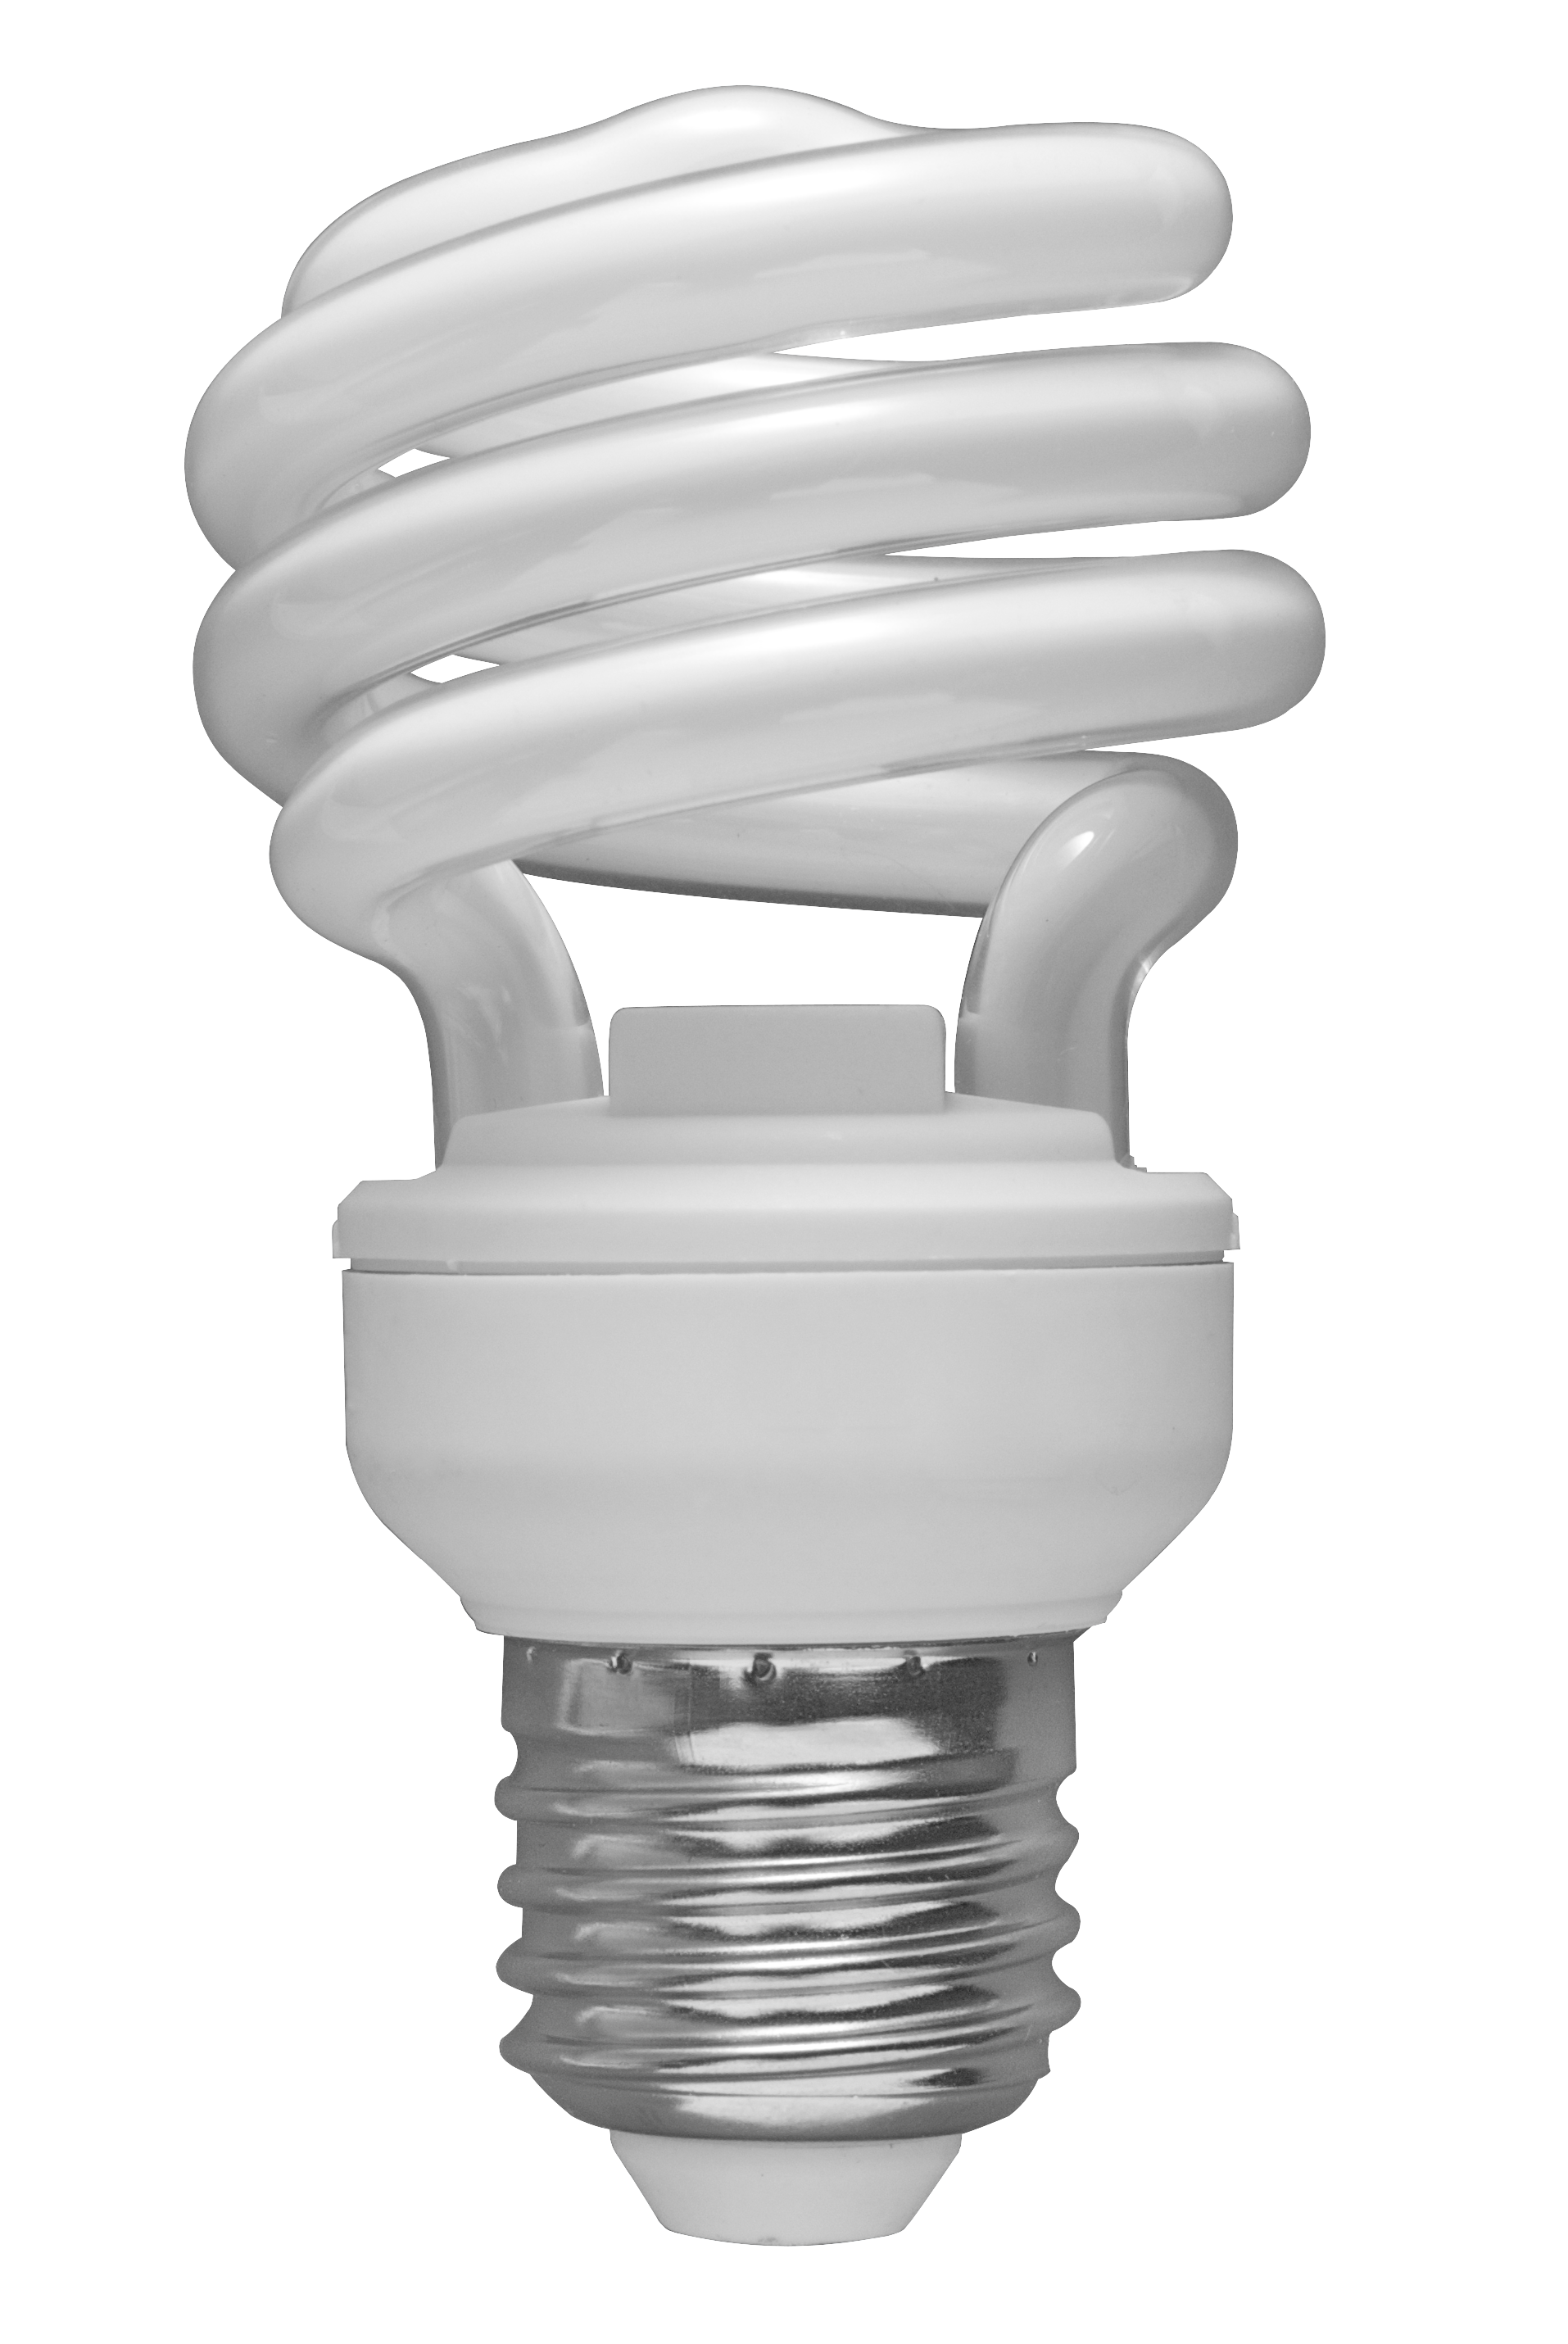 Bulb clipart uses light To to Gentec to to